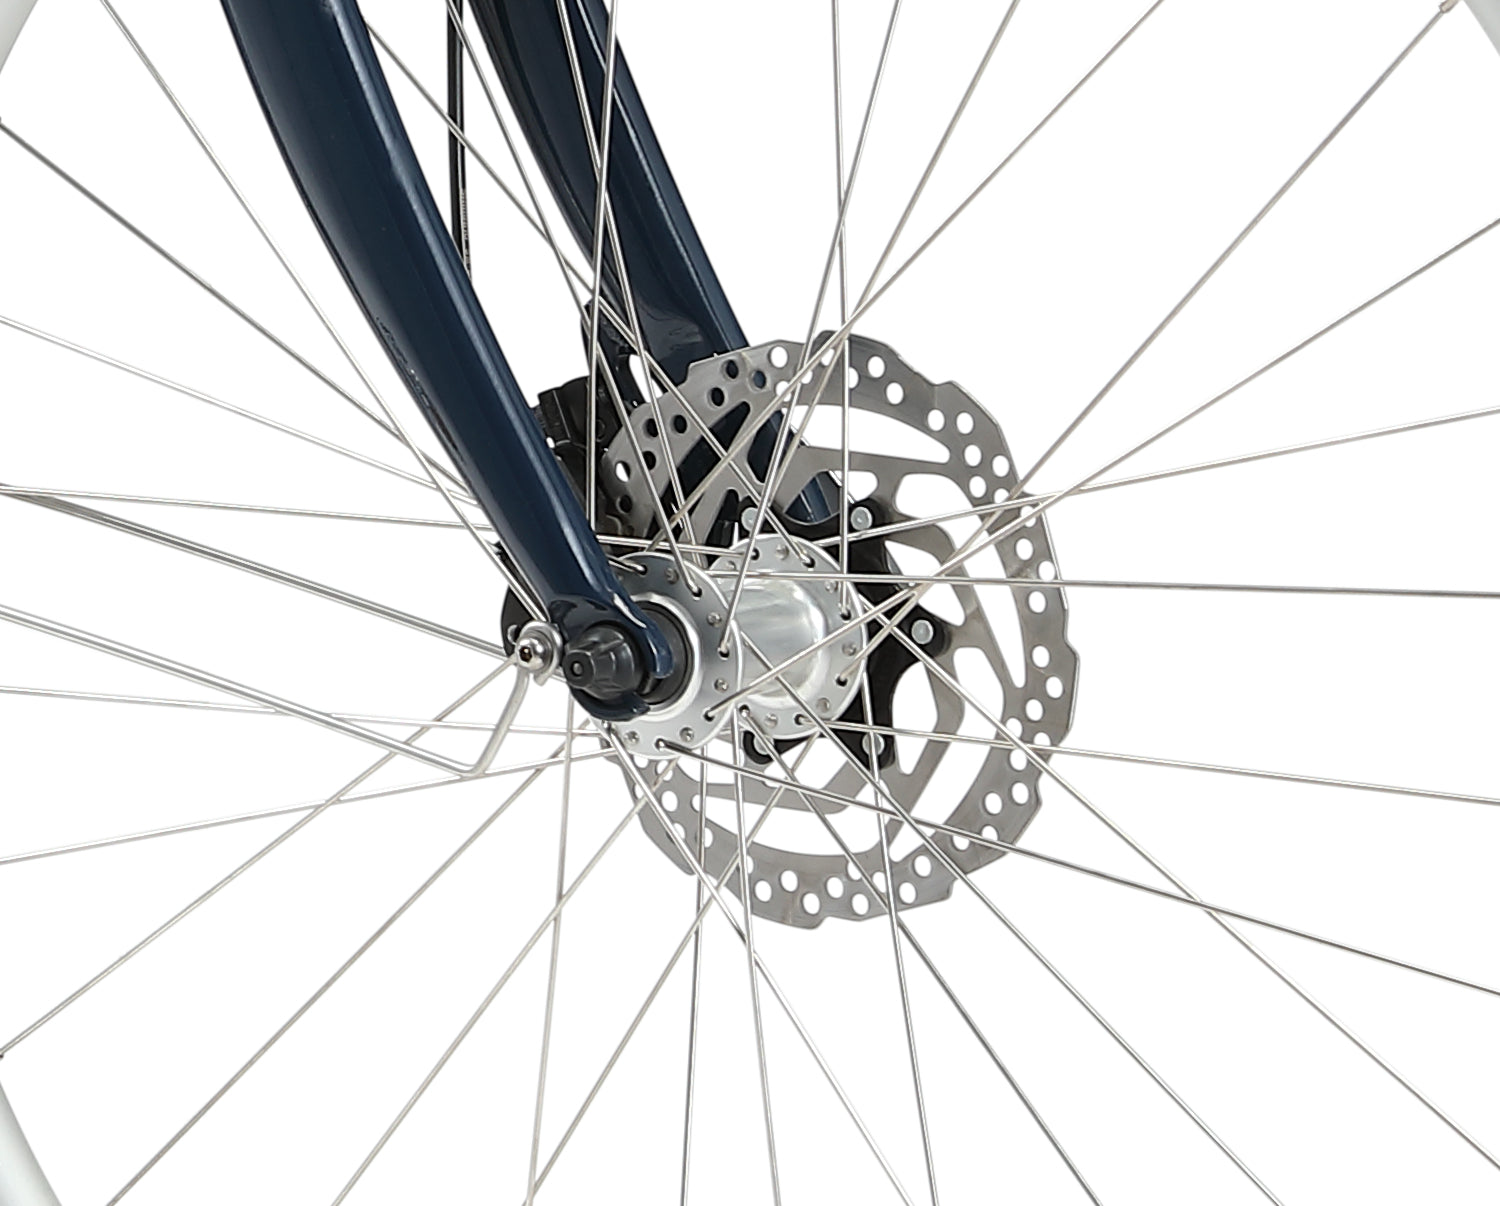 In The Details - Disc Brake